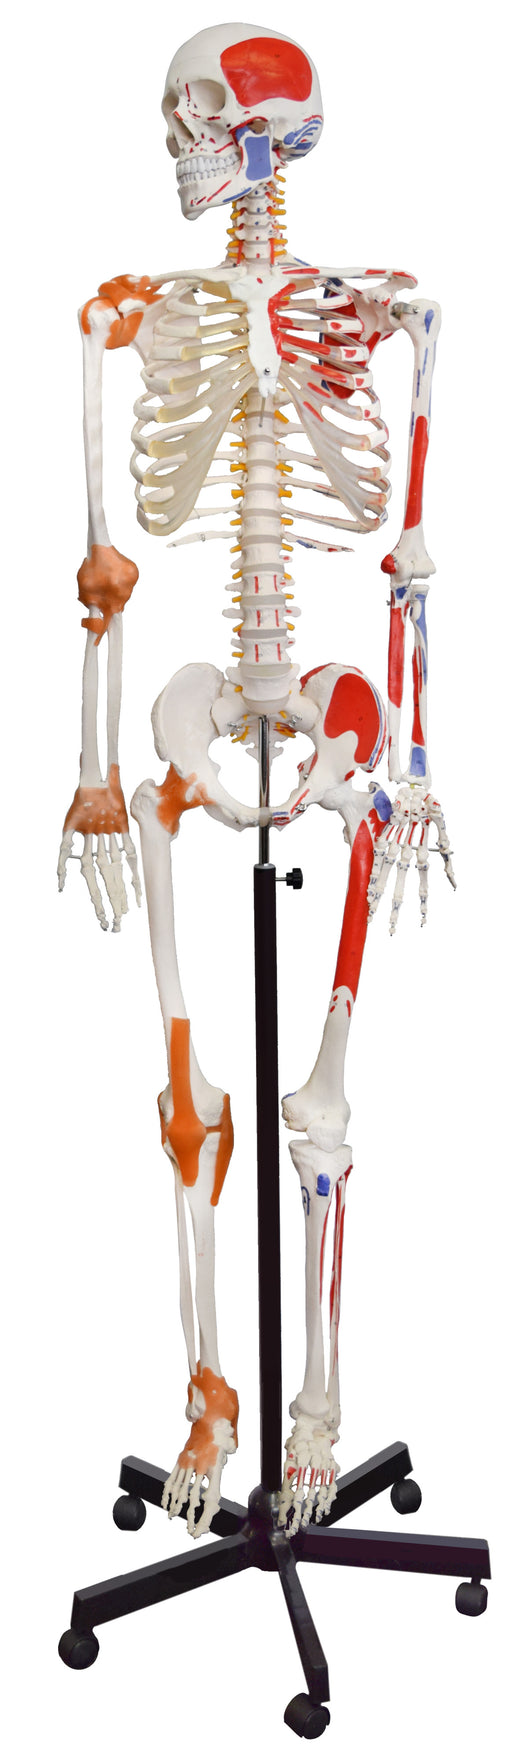 Muscular Skeleton - Flexible, Muscle Origin & Insertions, Ligaments -Eisco Labs